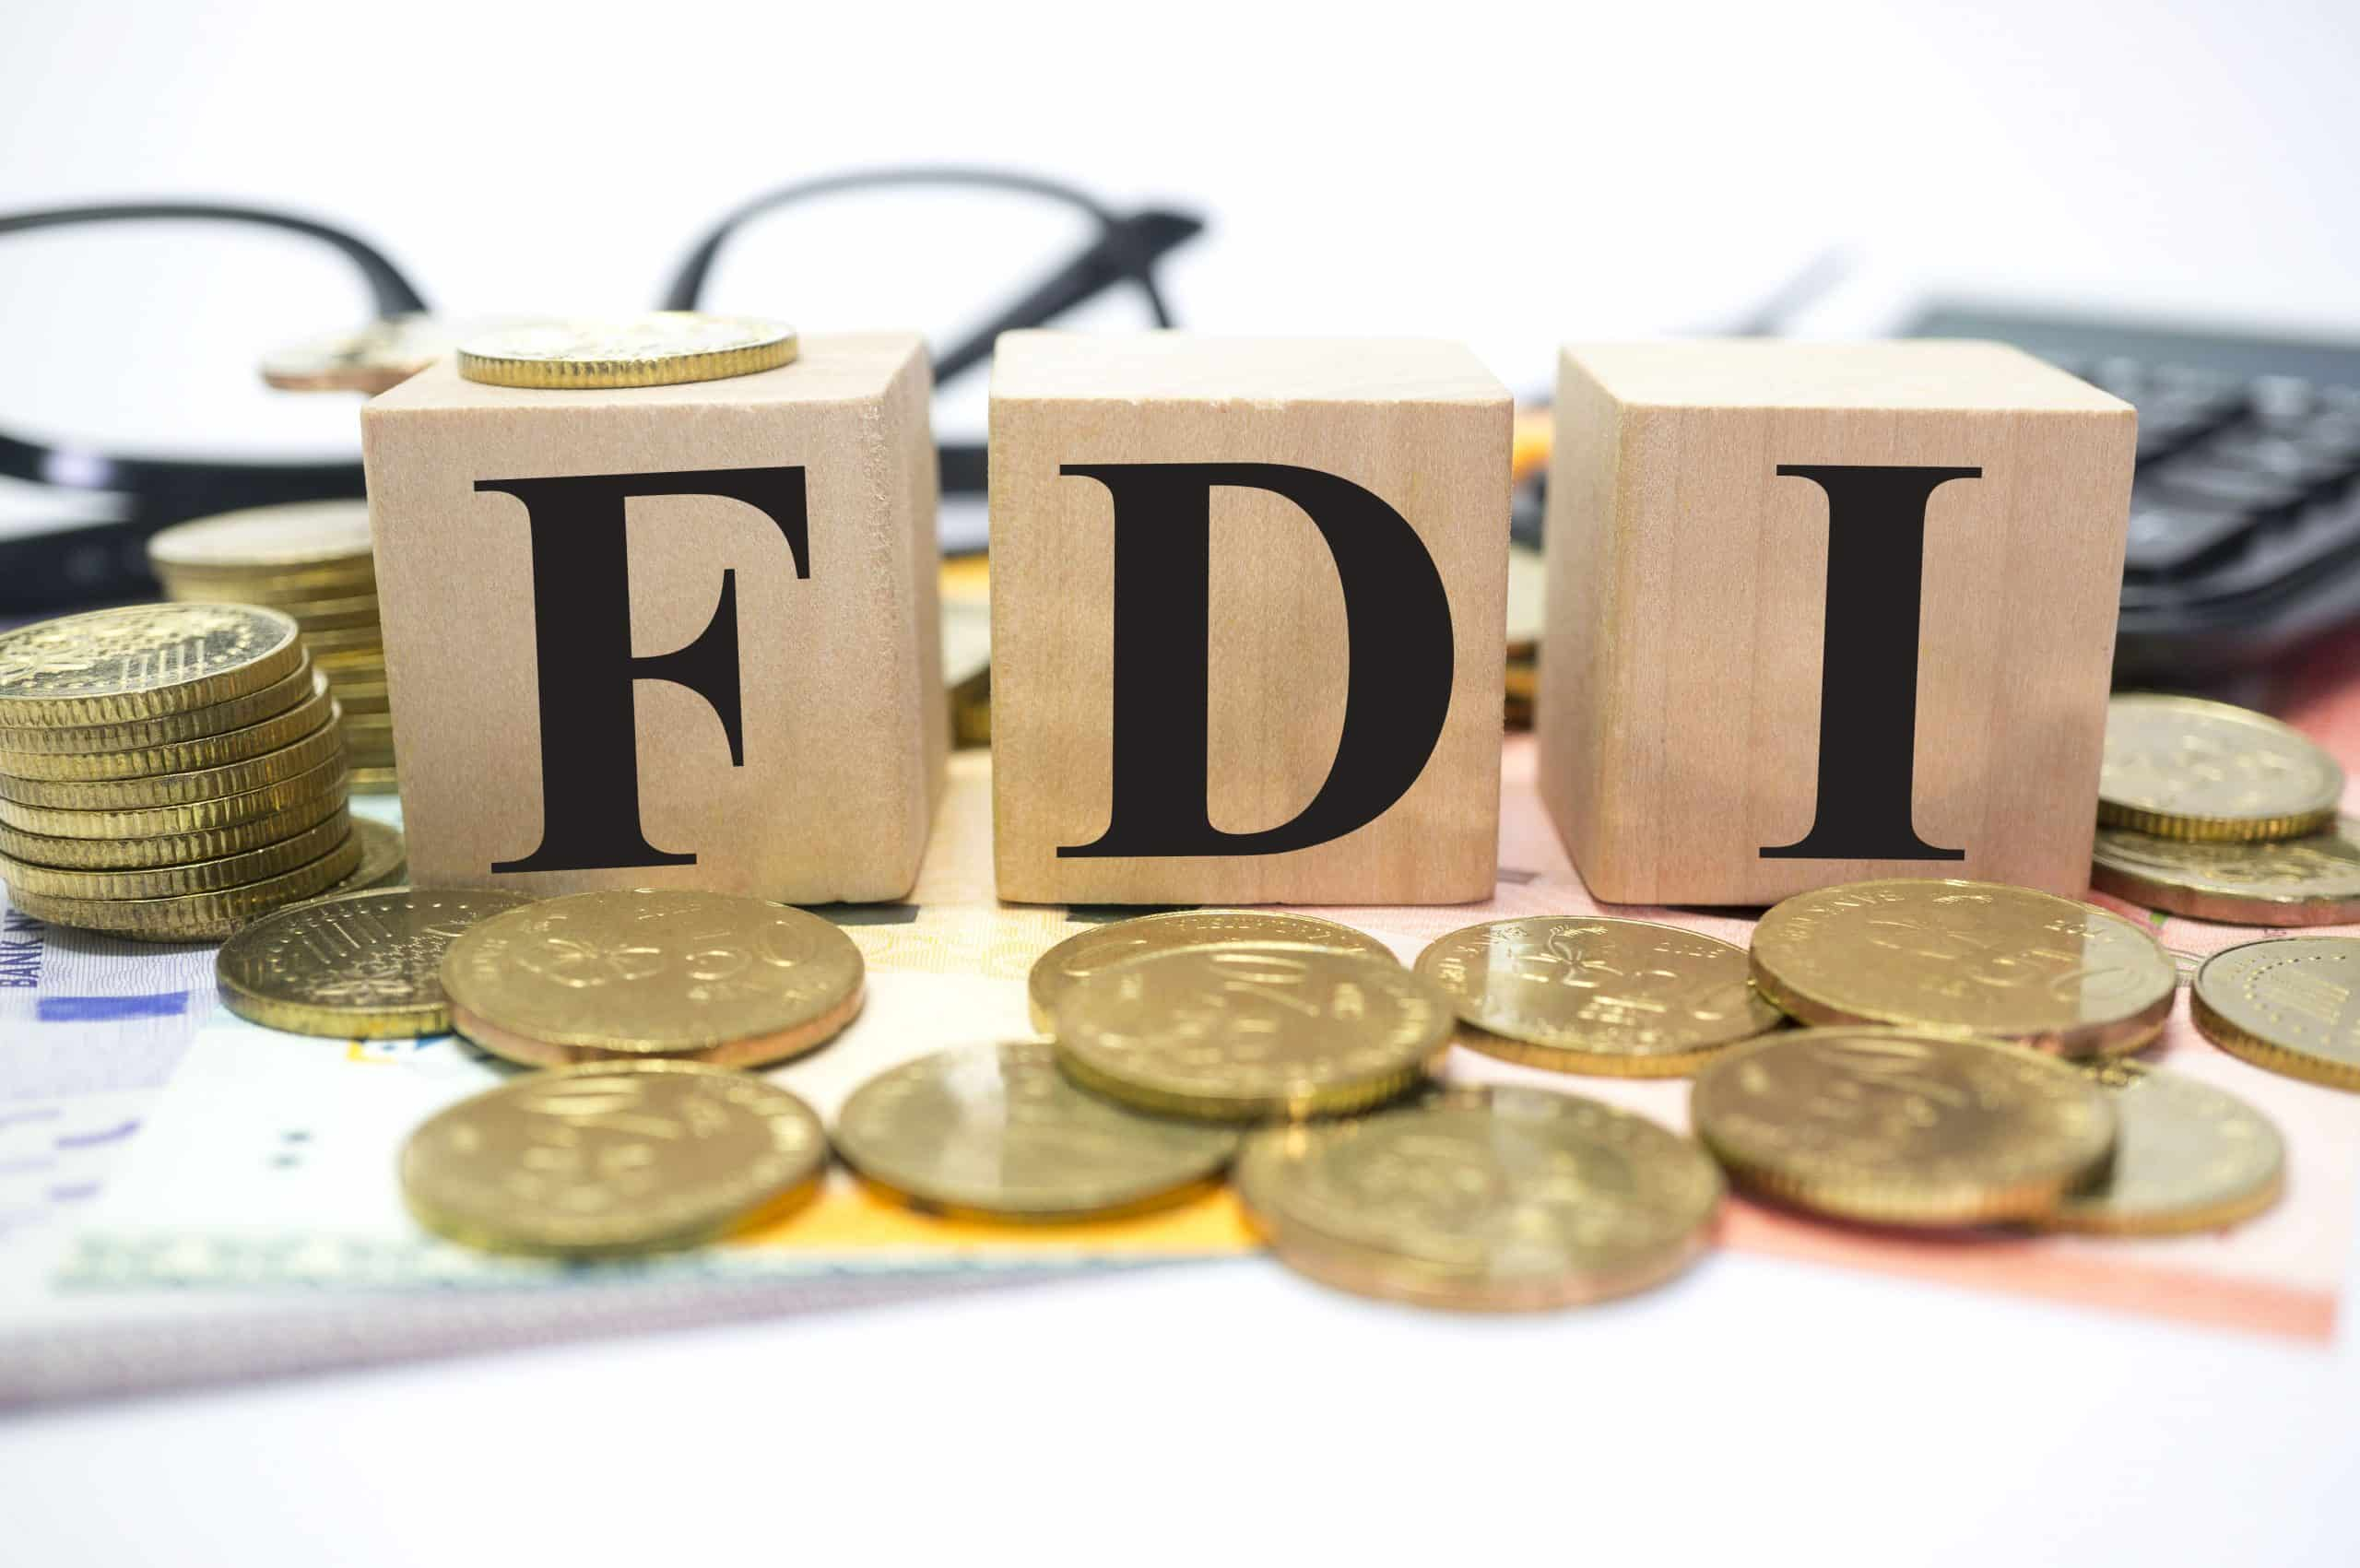 Over 20 countries impose screening mechanisms for FDI amid COVID-19 pandemic